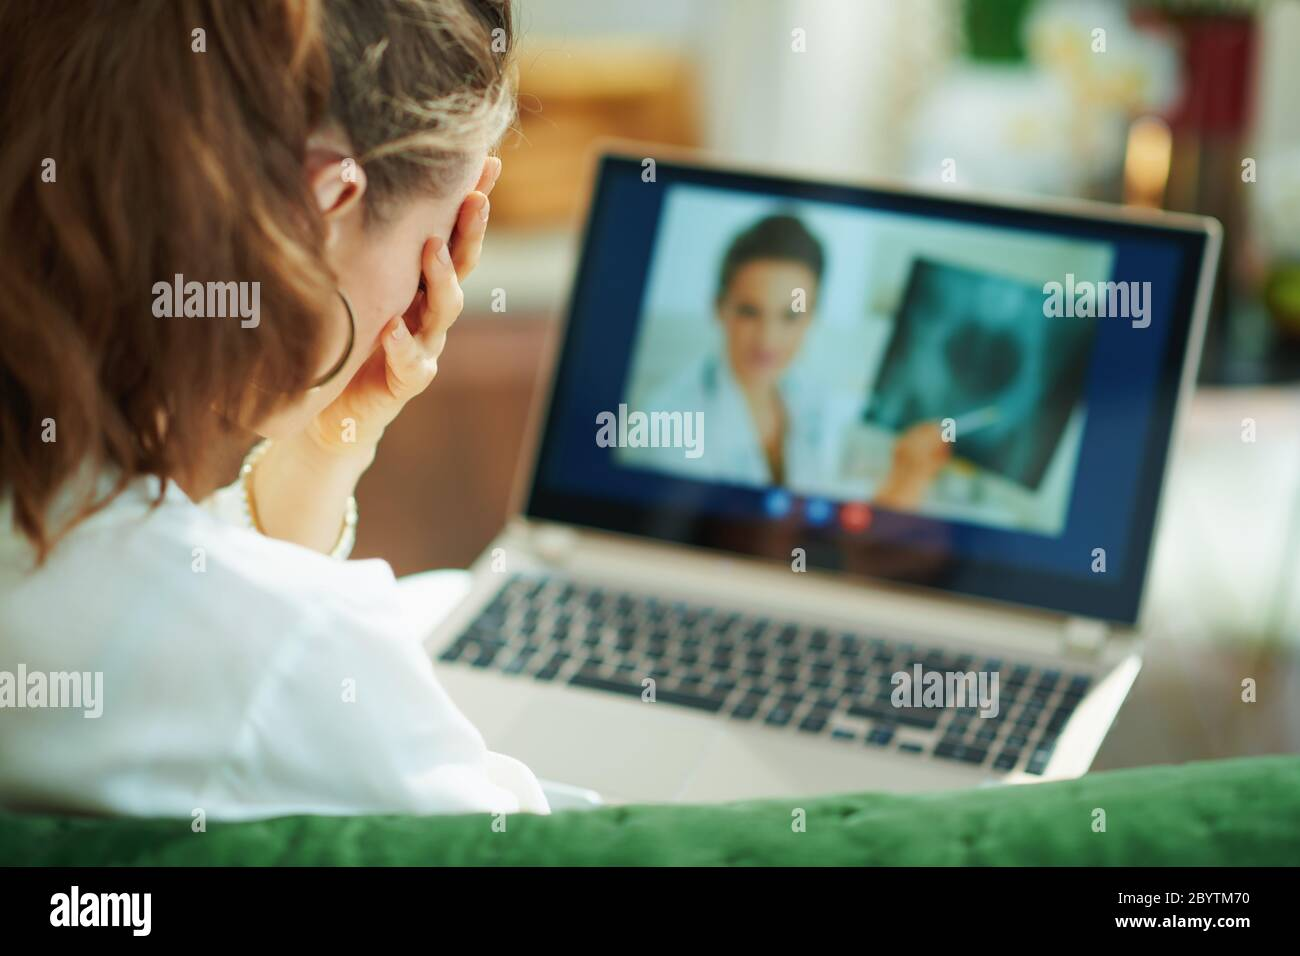 Seen from behind woman speaking with doctor using tele health technology on a laptop while sitting on a couch in the house in sunny day. Stock Photo